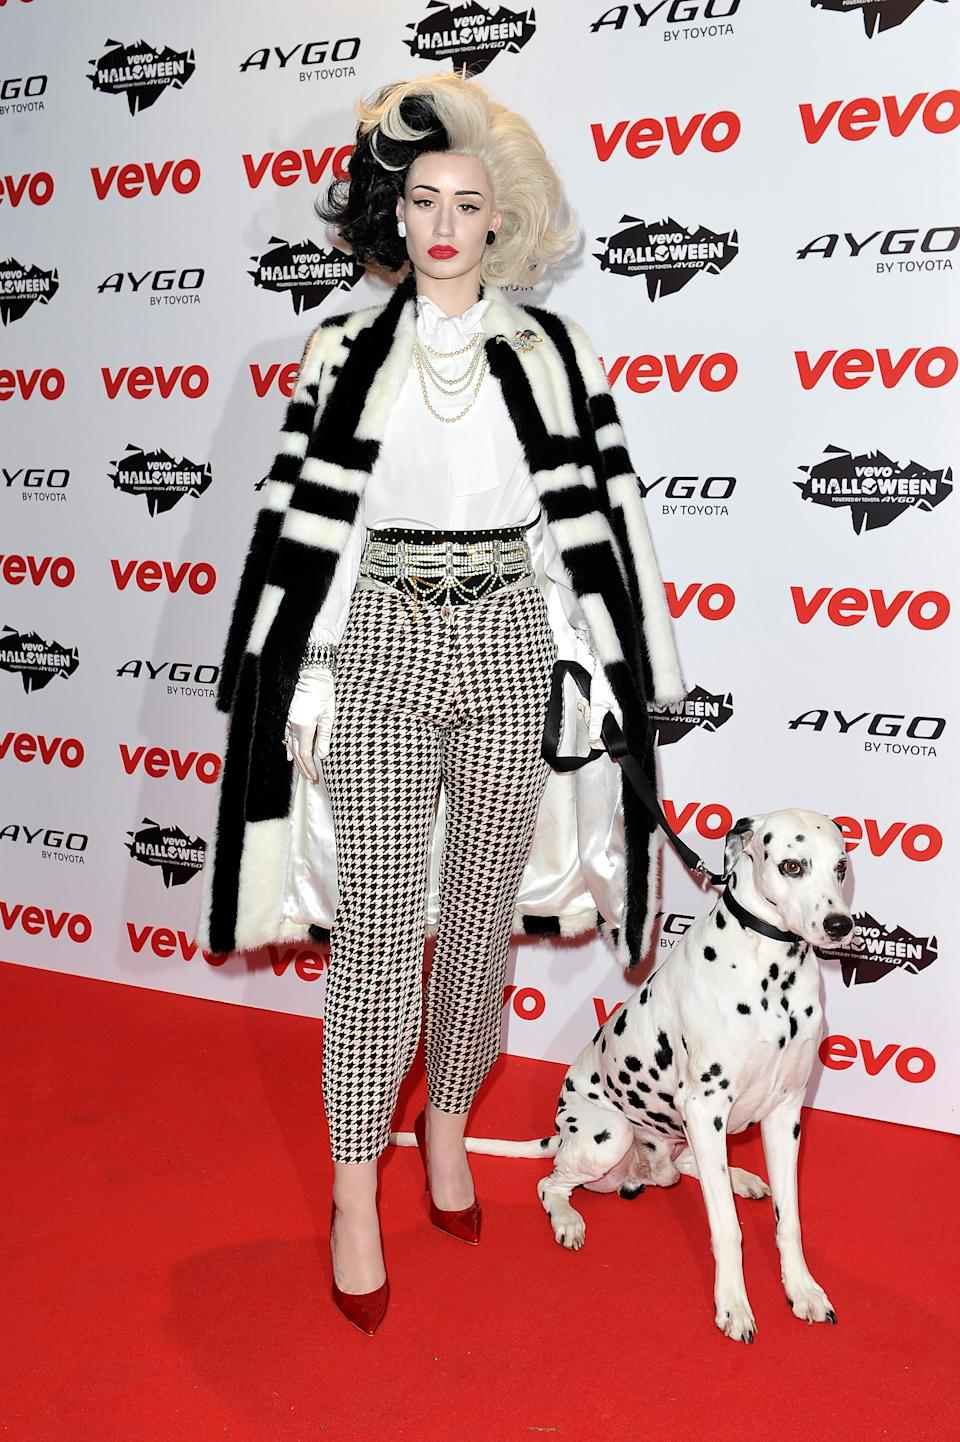 """<strong>Iggy Azalea as Cruella de Ville</strong><br><br>No dalmatians were harmed in the making of this 2016 Iggy Azalea Cruella de Ville costume. Actually, though, that outfit is very chic, and should be worn again.<span class=""""copyright"""">Gareth Cattermole/Getty Images</span>"""